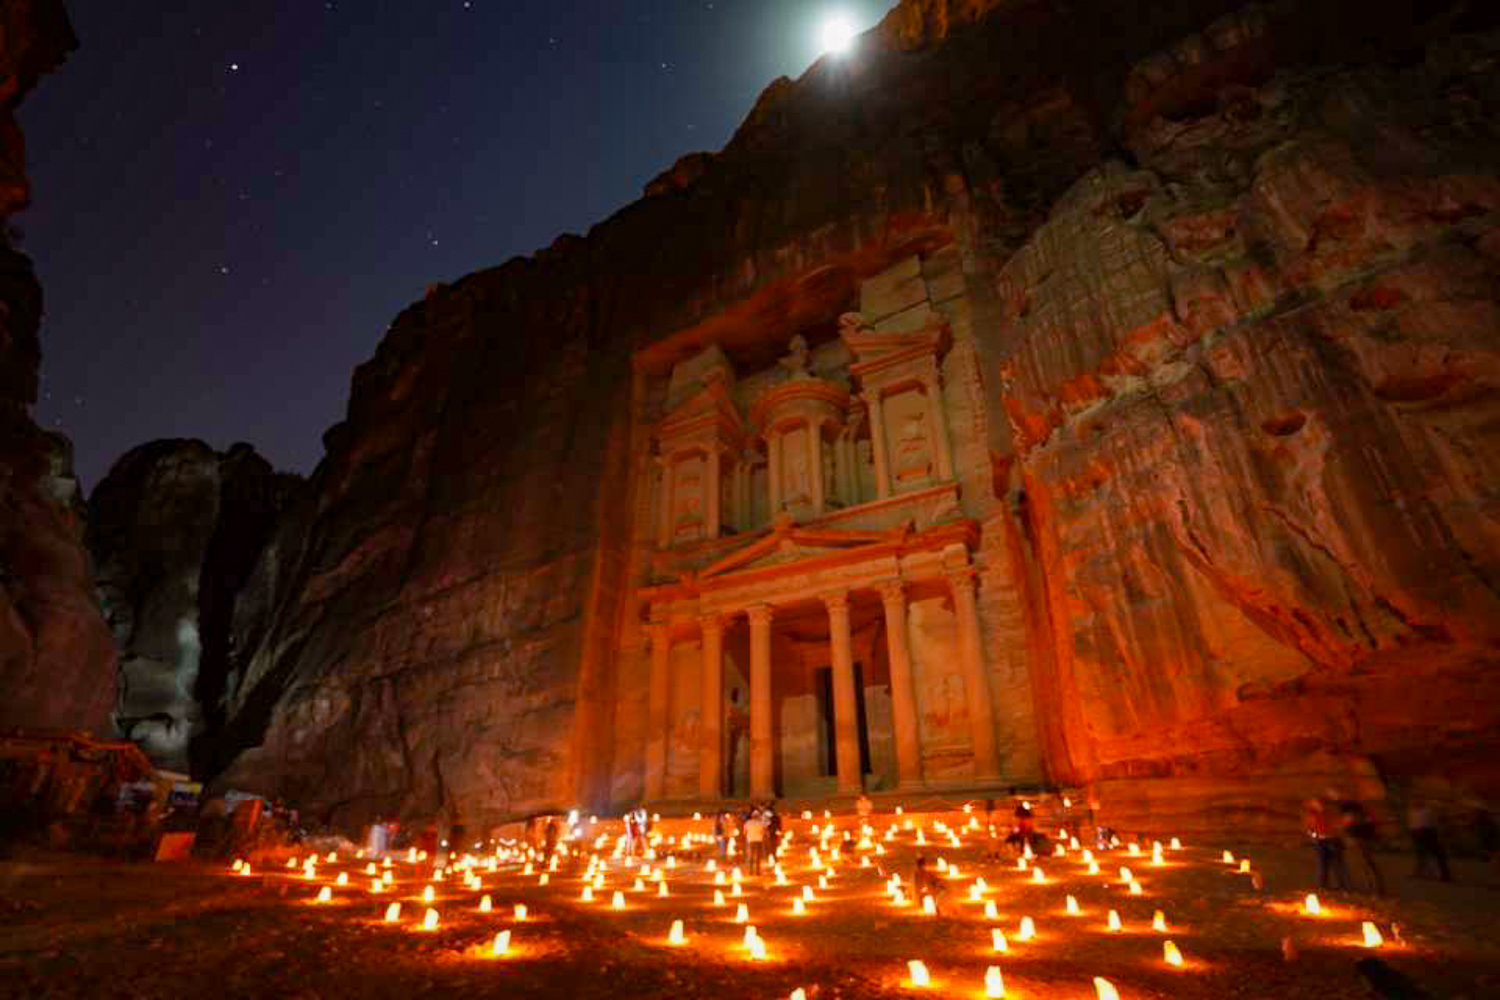 Petra, capital city of the Nabataean Kingdom, believed to be 4th Century BC